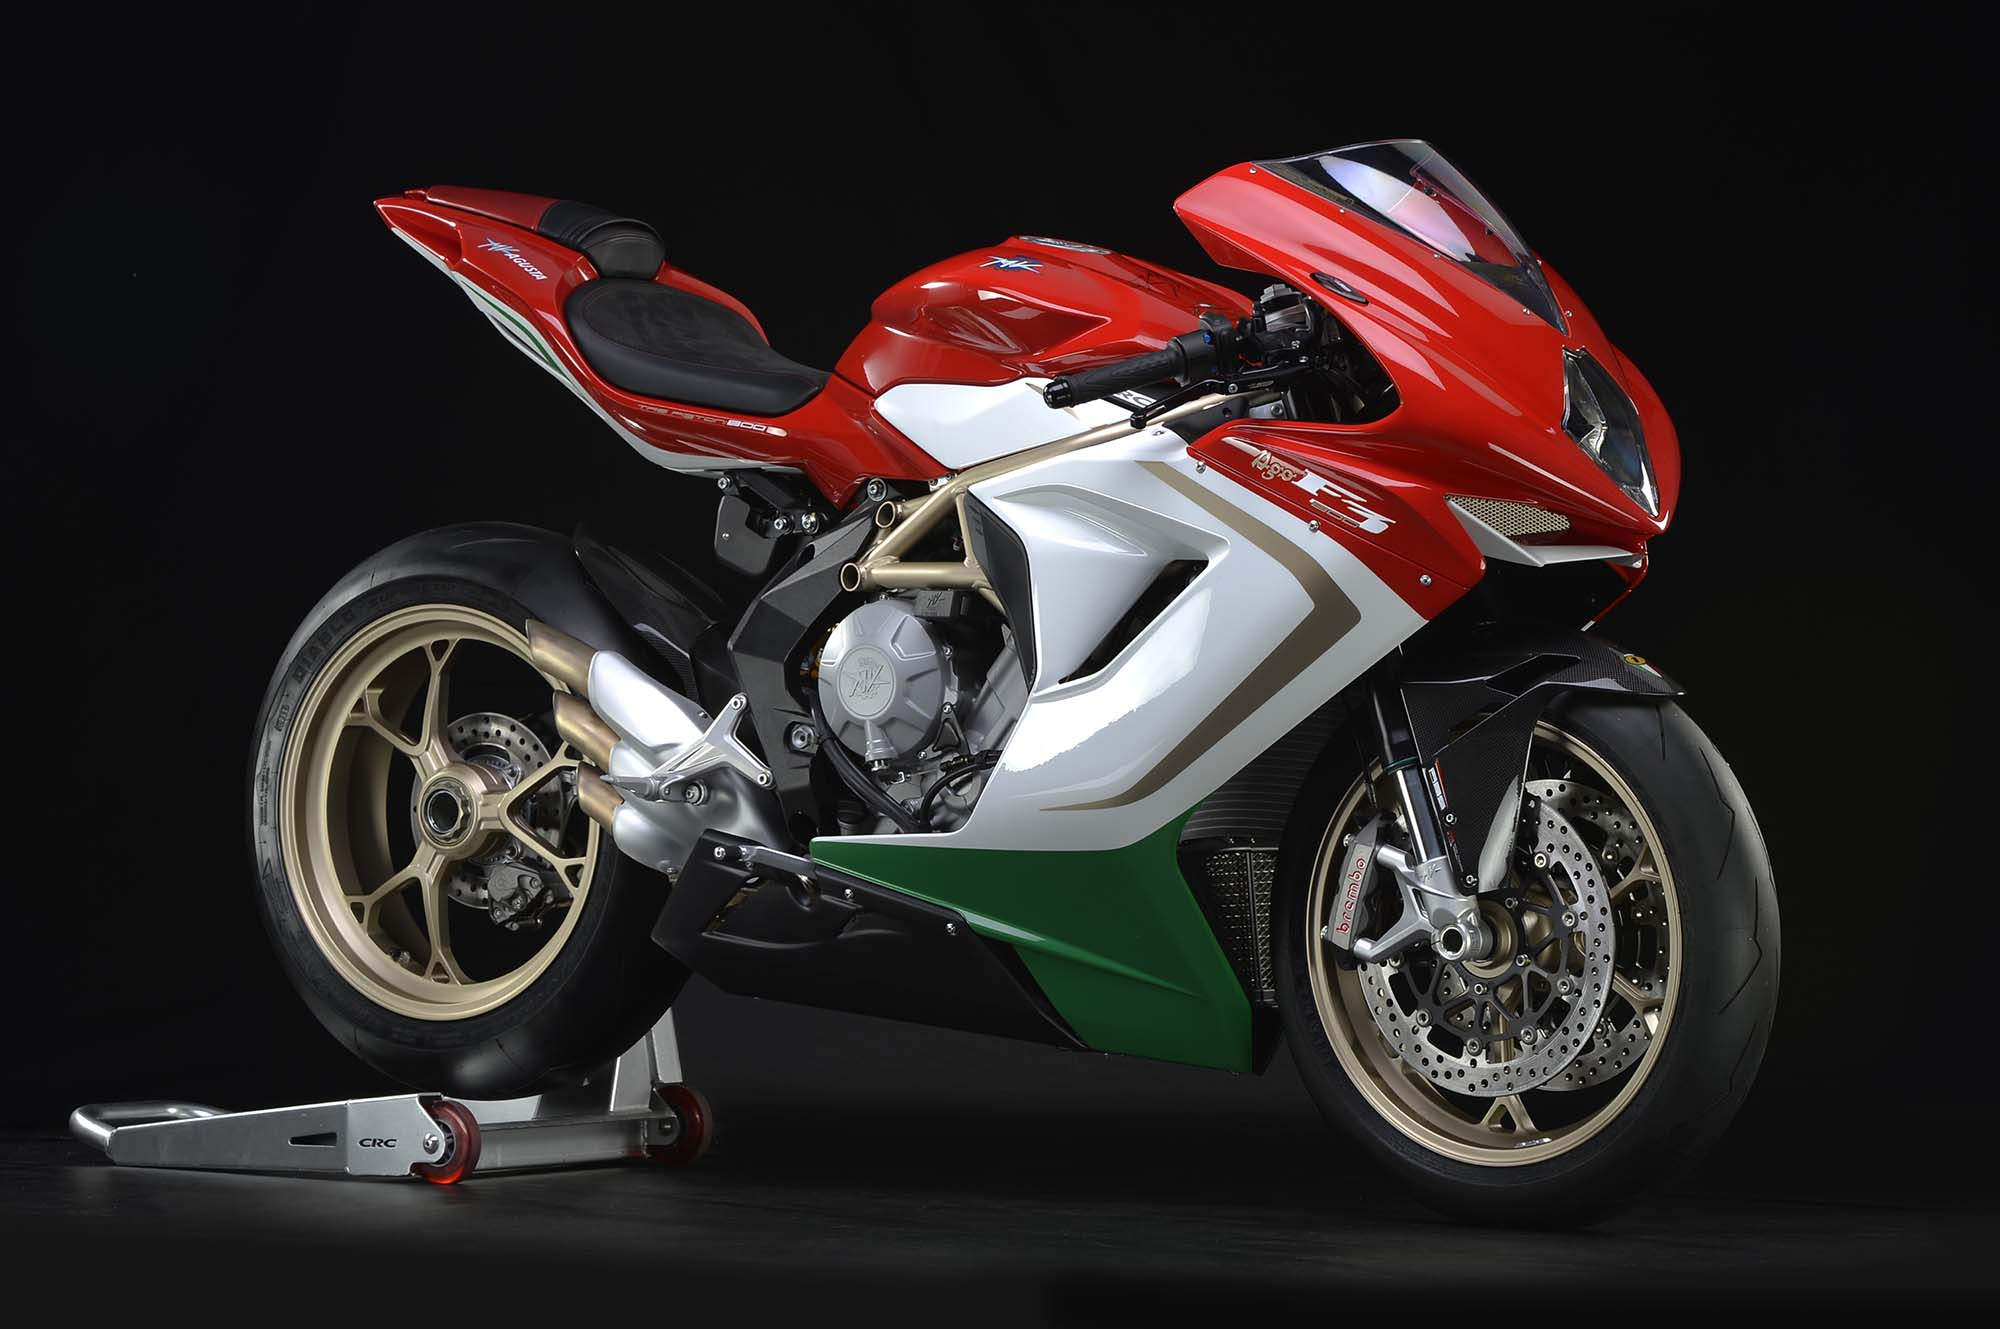 mv agusta f3 800 ago now officially debuts asphalt rubber. Black Bedroom Furniture Sets. Home Design Ideas